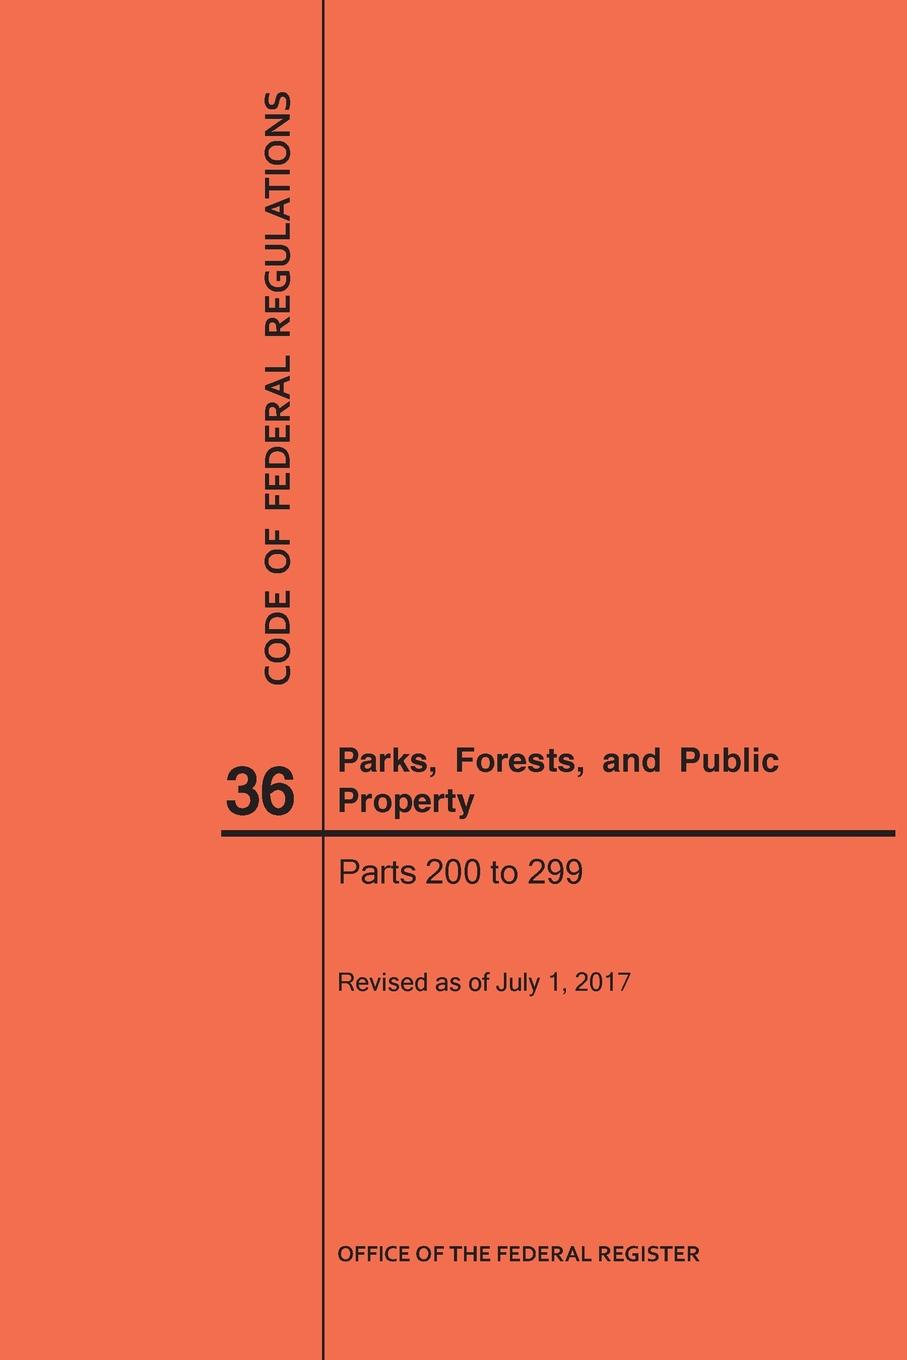 NARA Code of Federal Regulations Title 36, Parks, Forests and Public Property, Parts 200-299, 2017 parks and people